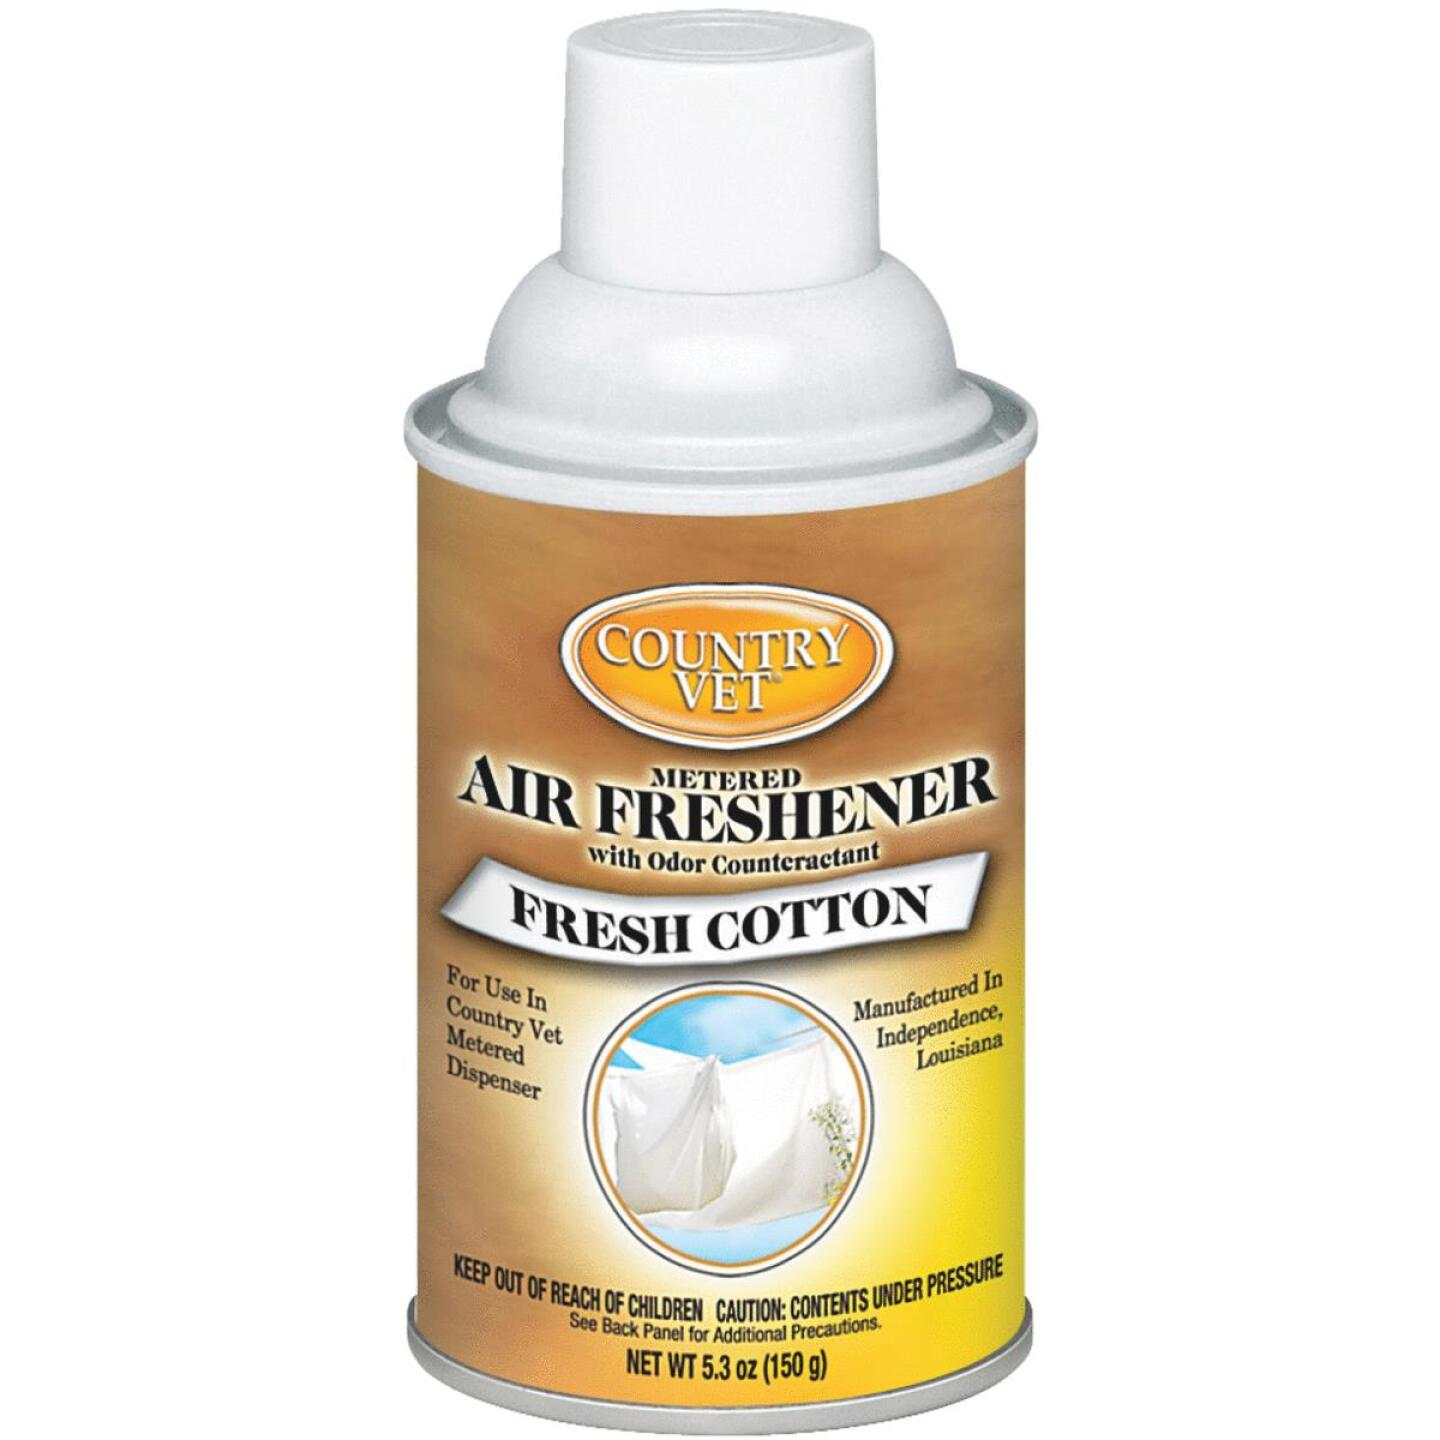 Country Vet 6.6 Oz. Fresh Cotton Fragrance Metered Spray Refill Image 1